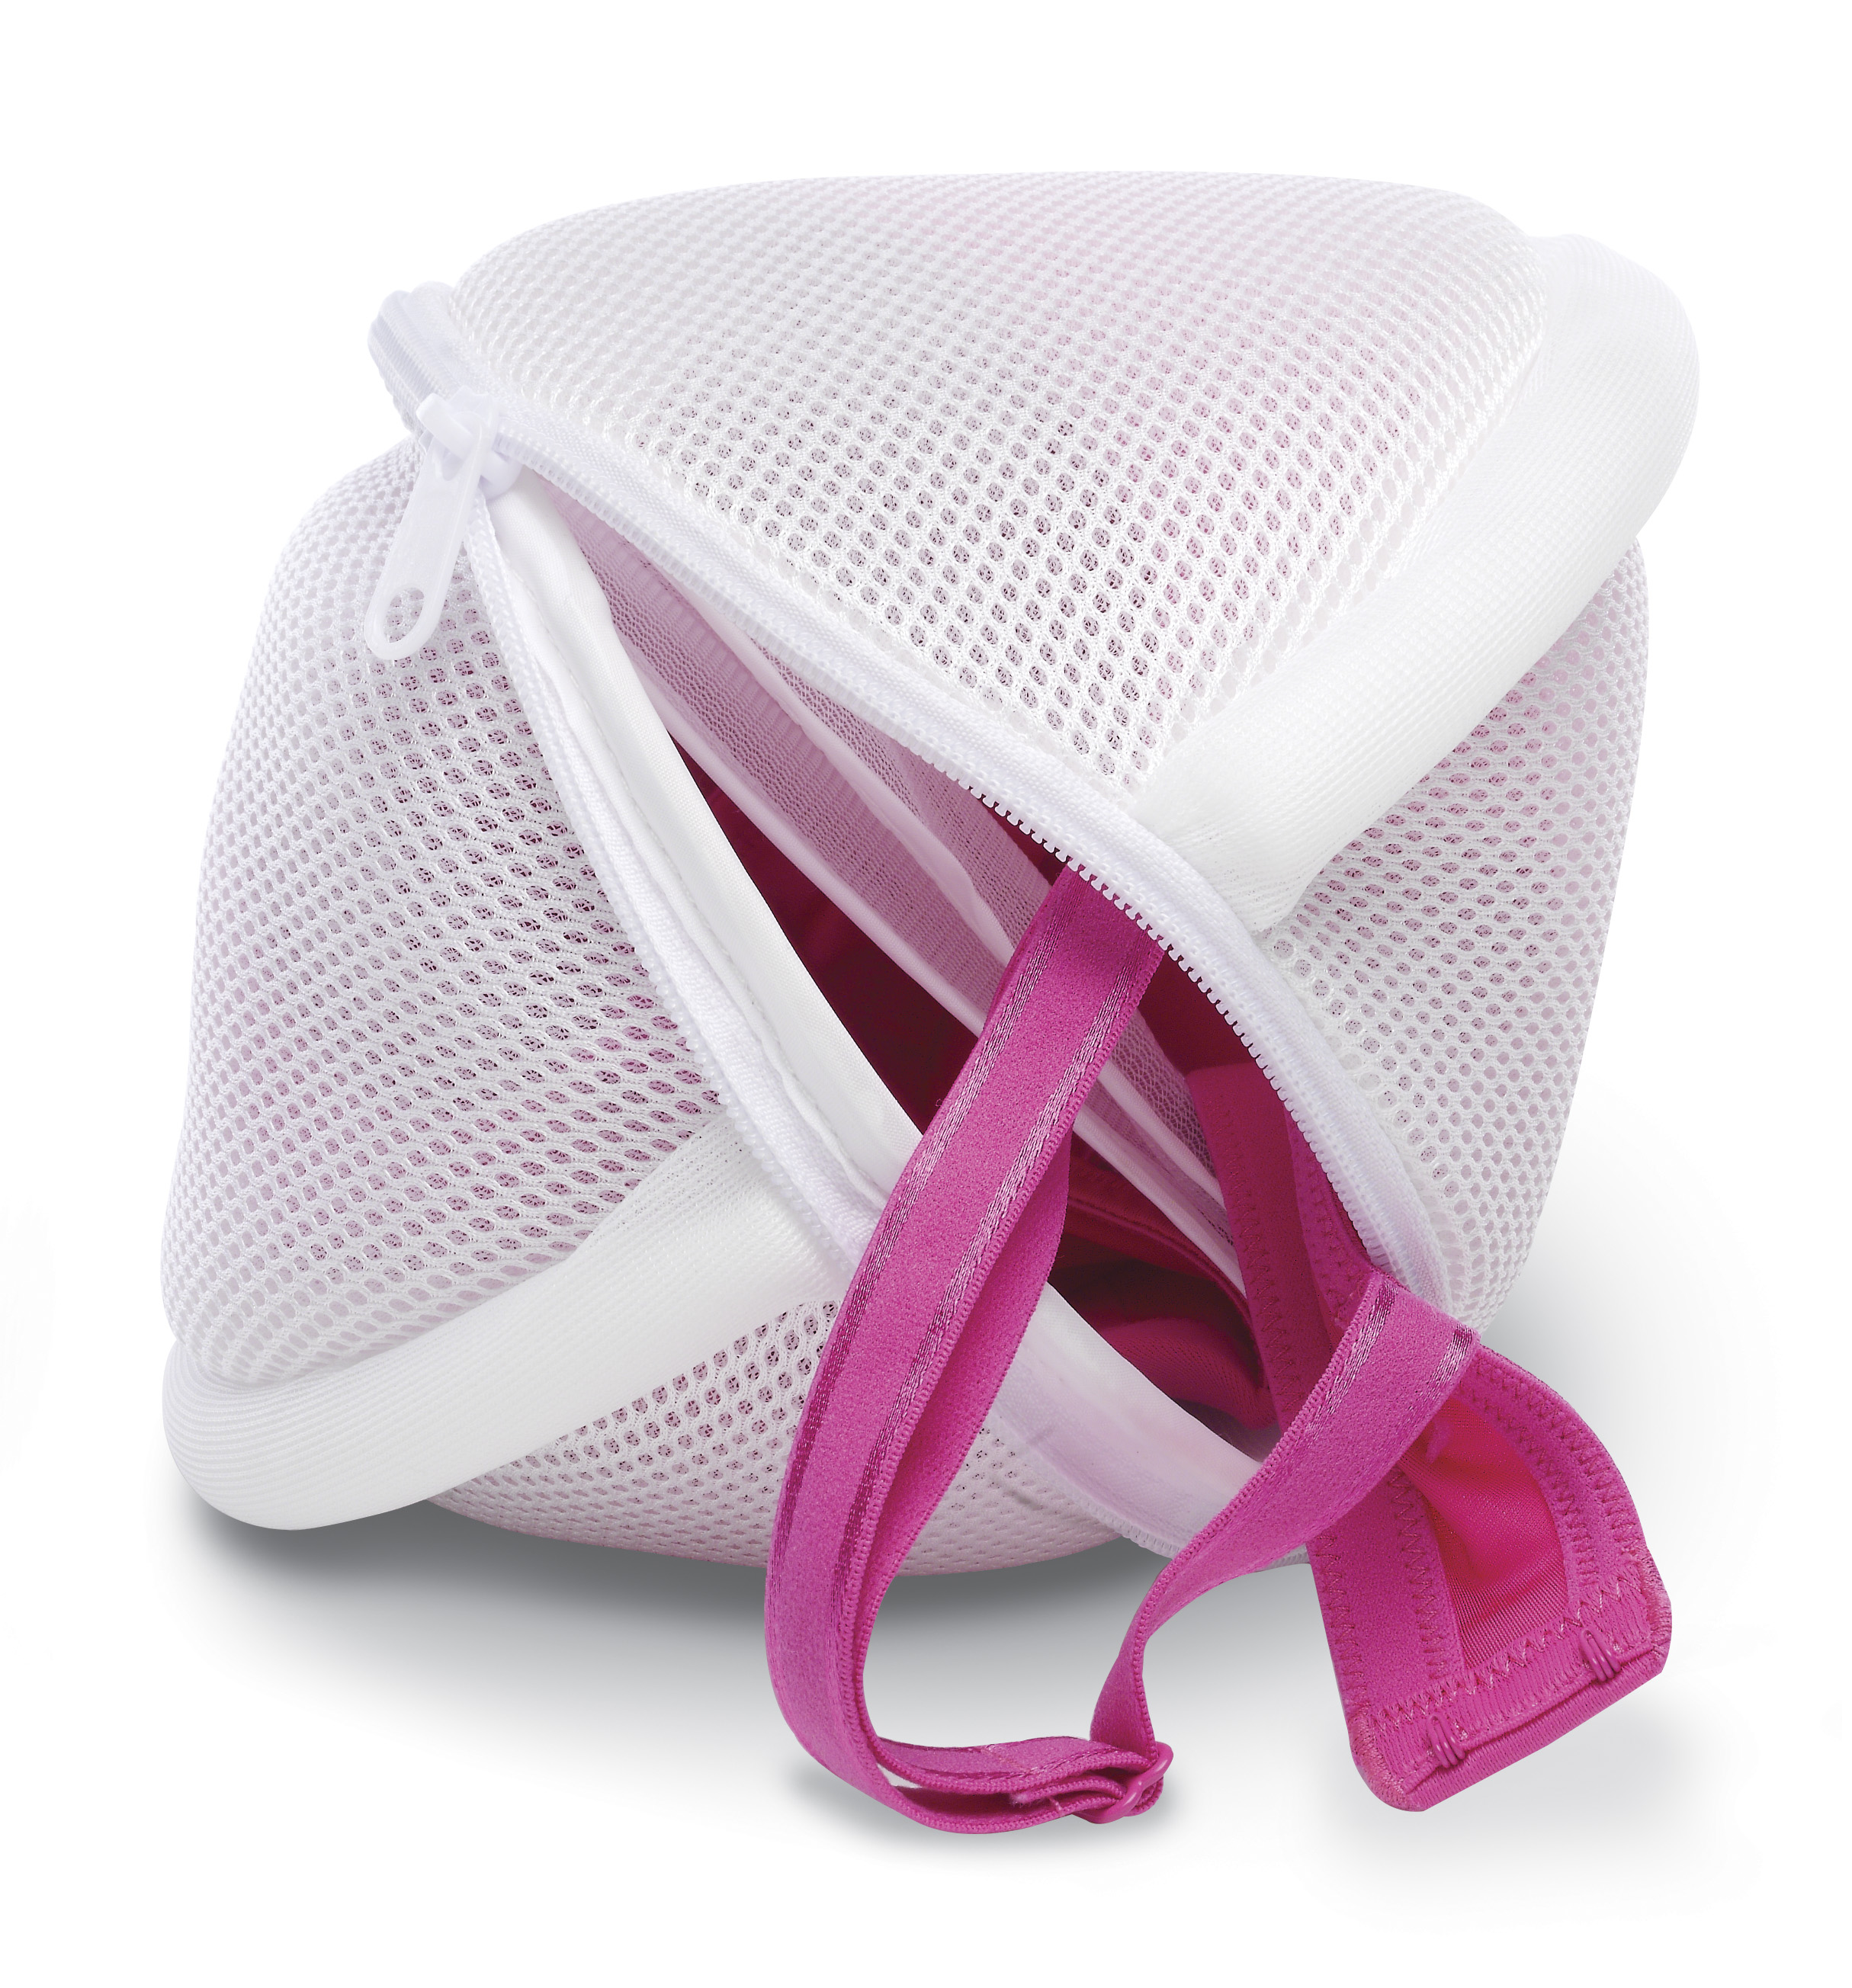 Whitmor 2-Compartment Bra Wash Bag White